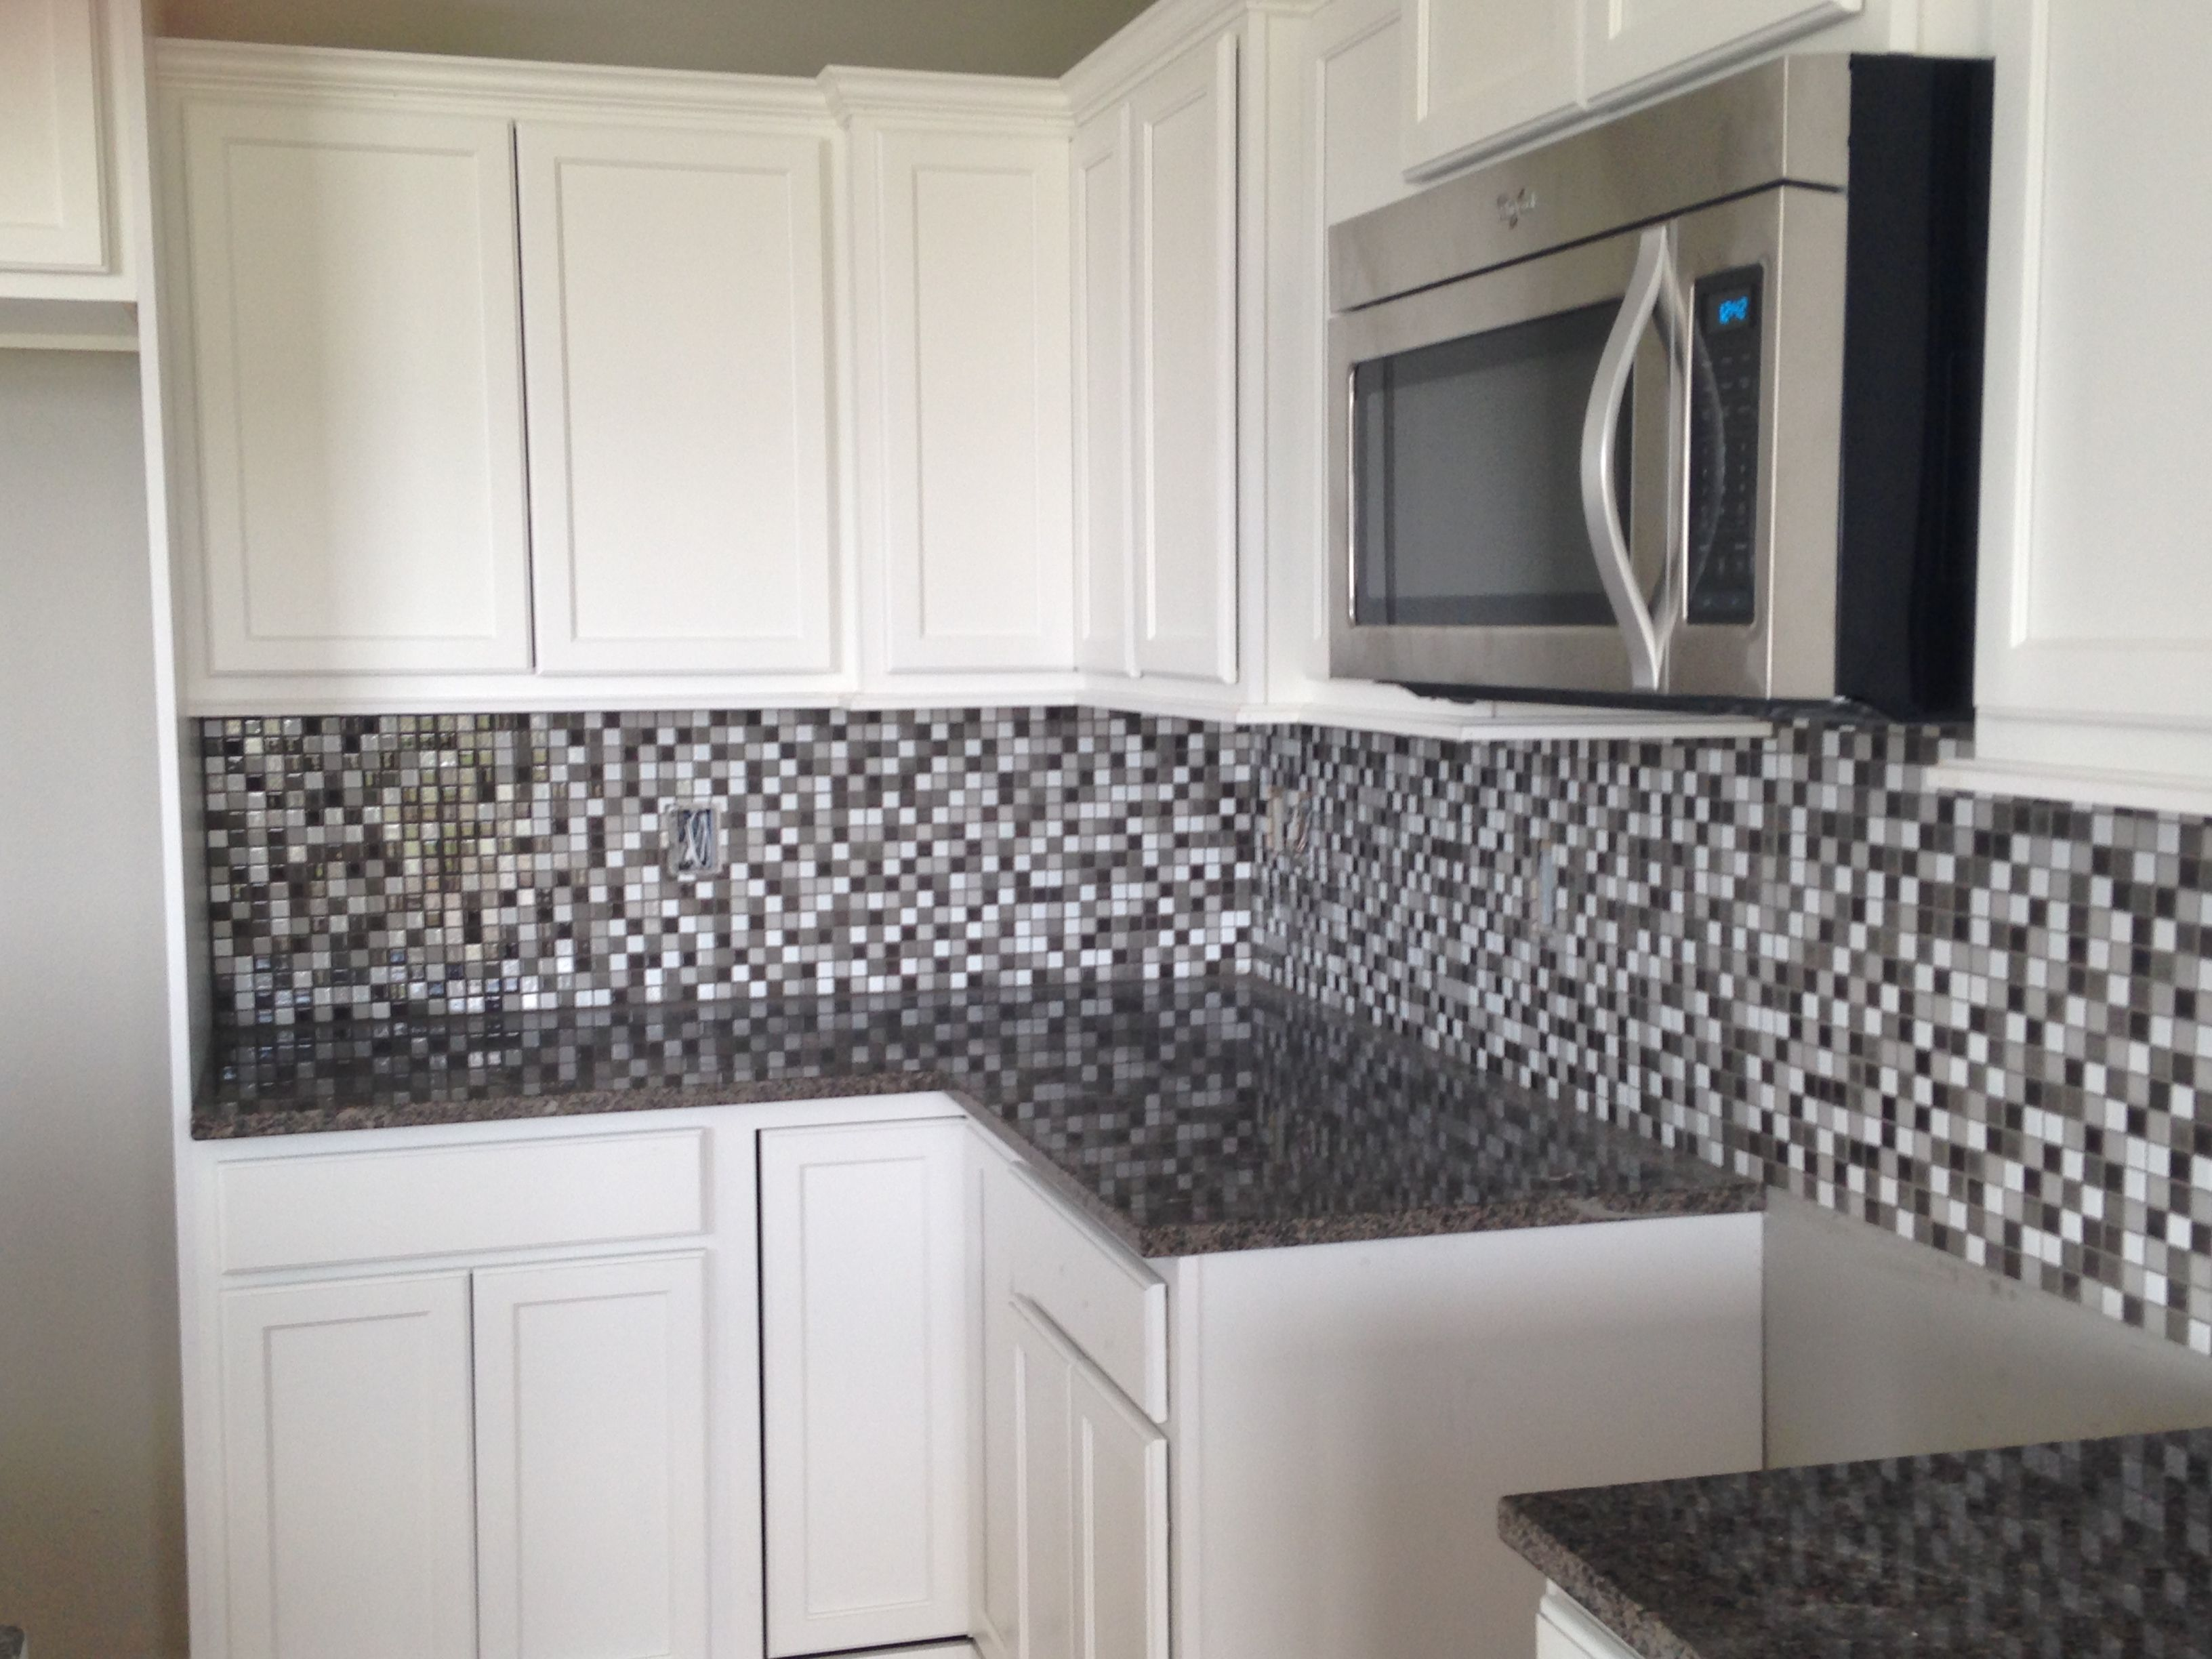 Kitchen backsplash in a 1x1 ceramic mosaic design by dennis kitchen backsplash in a 1x1 ceramic mosaic dailygadgetfo Image collections